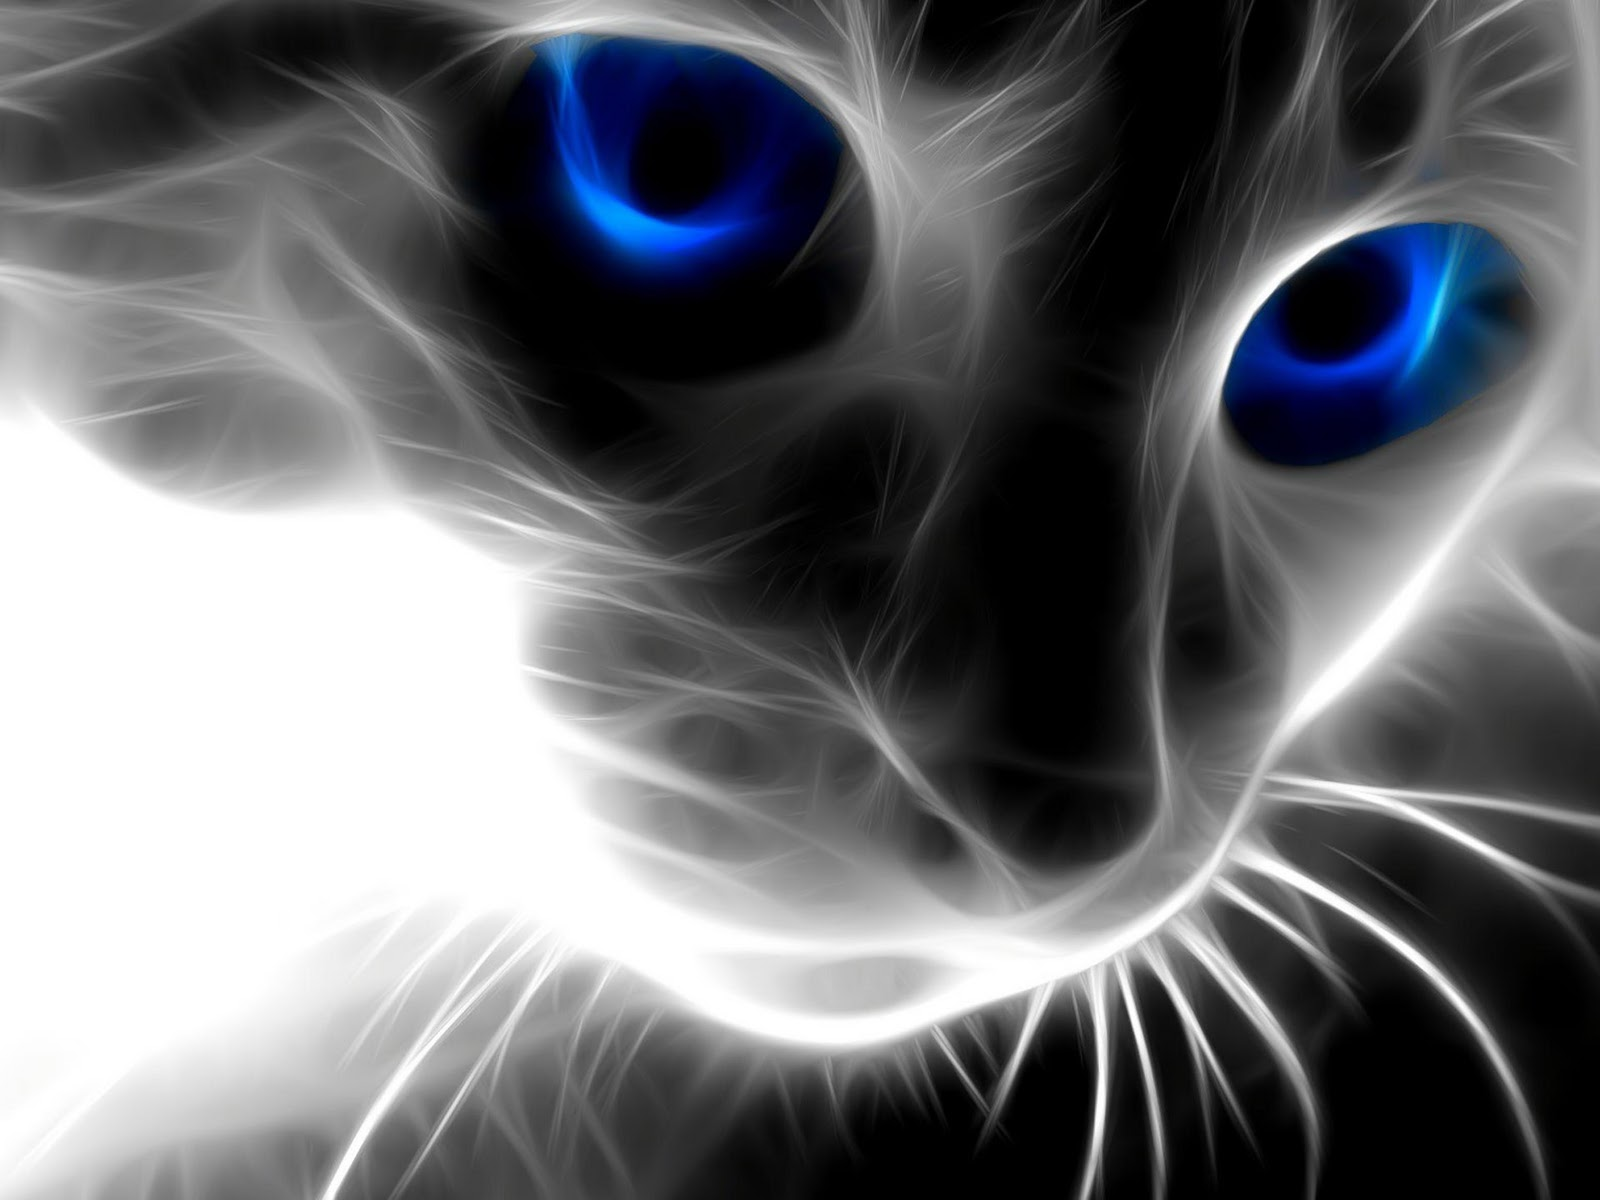 Awesome wallpaper - Cool backgrounds of cats ...